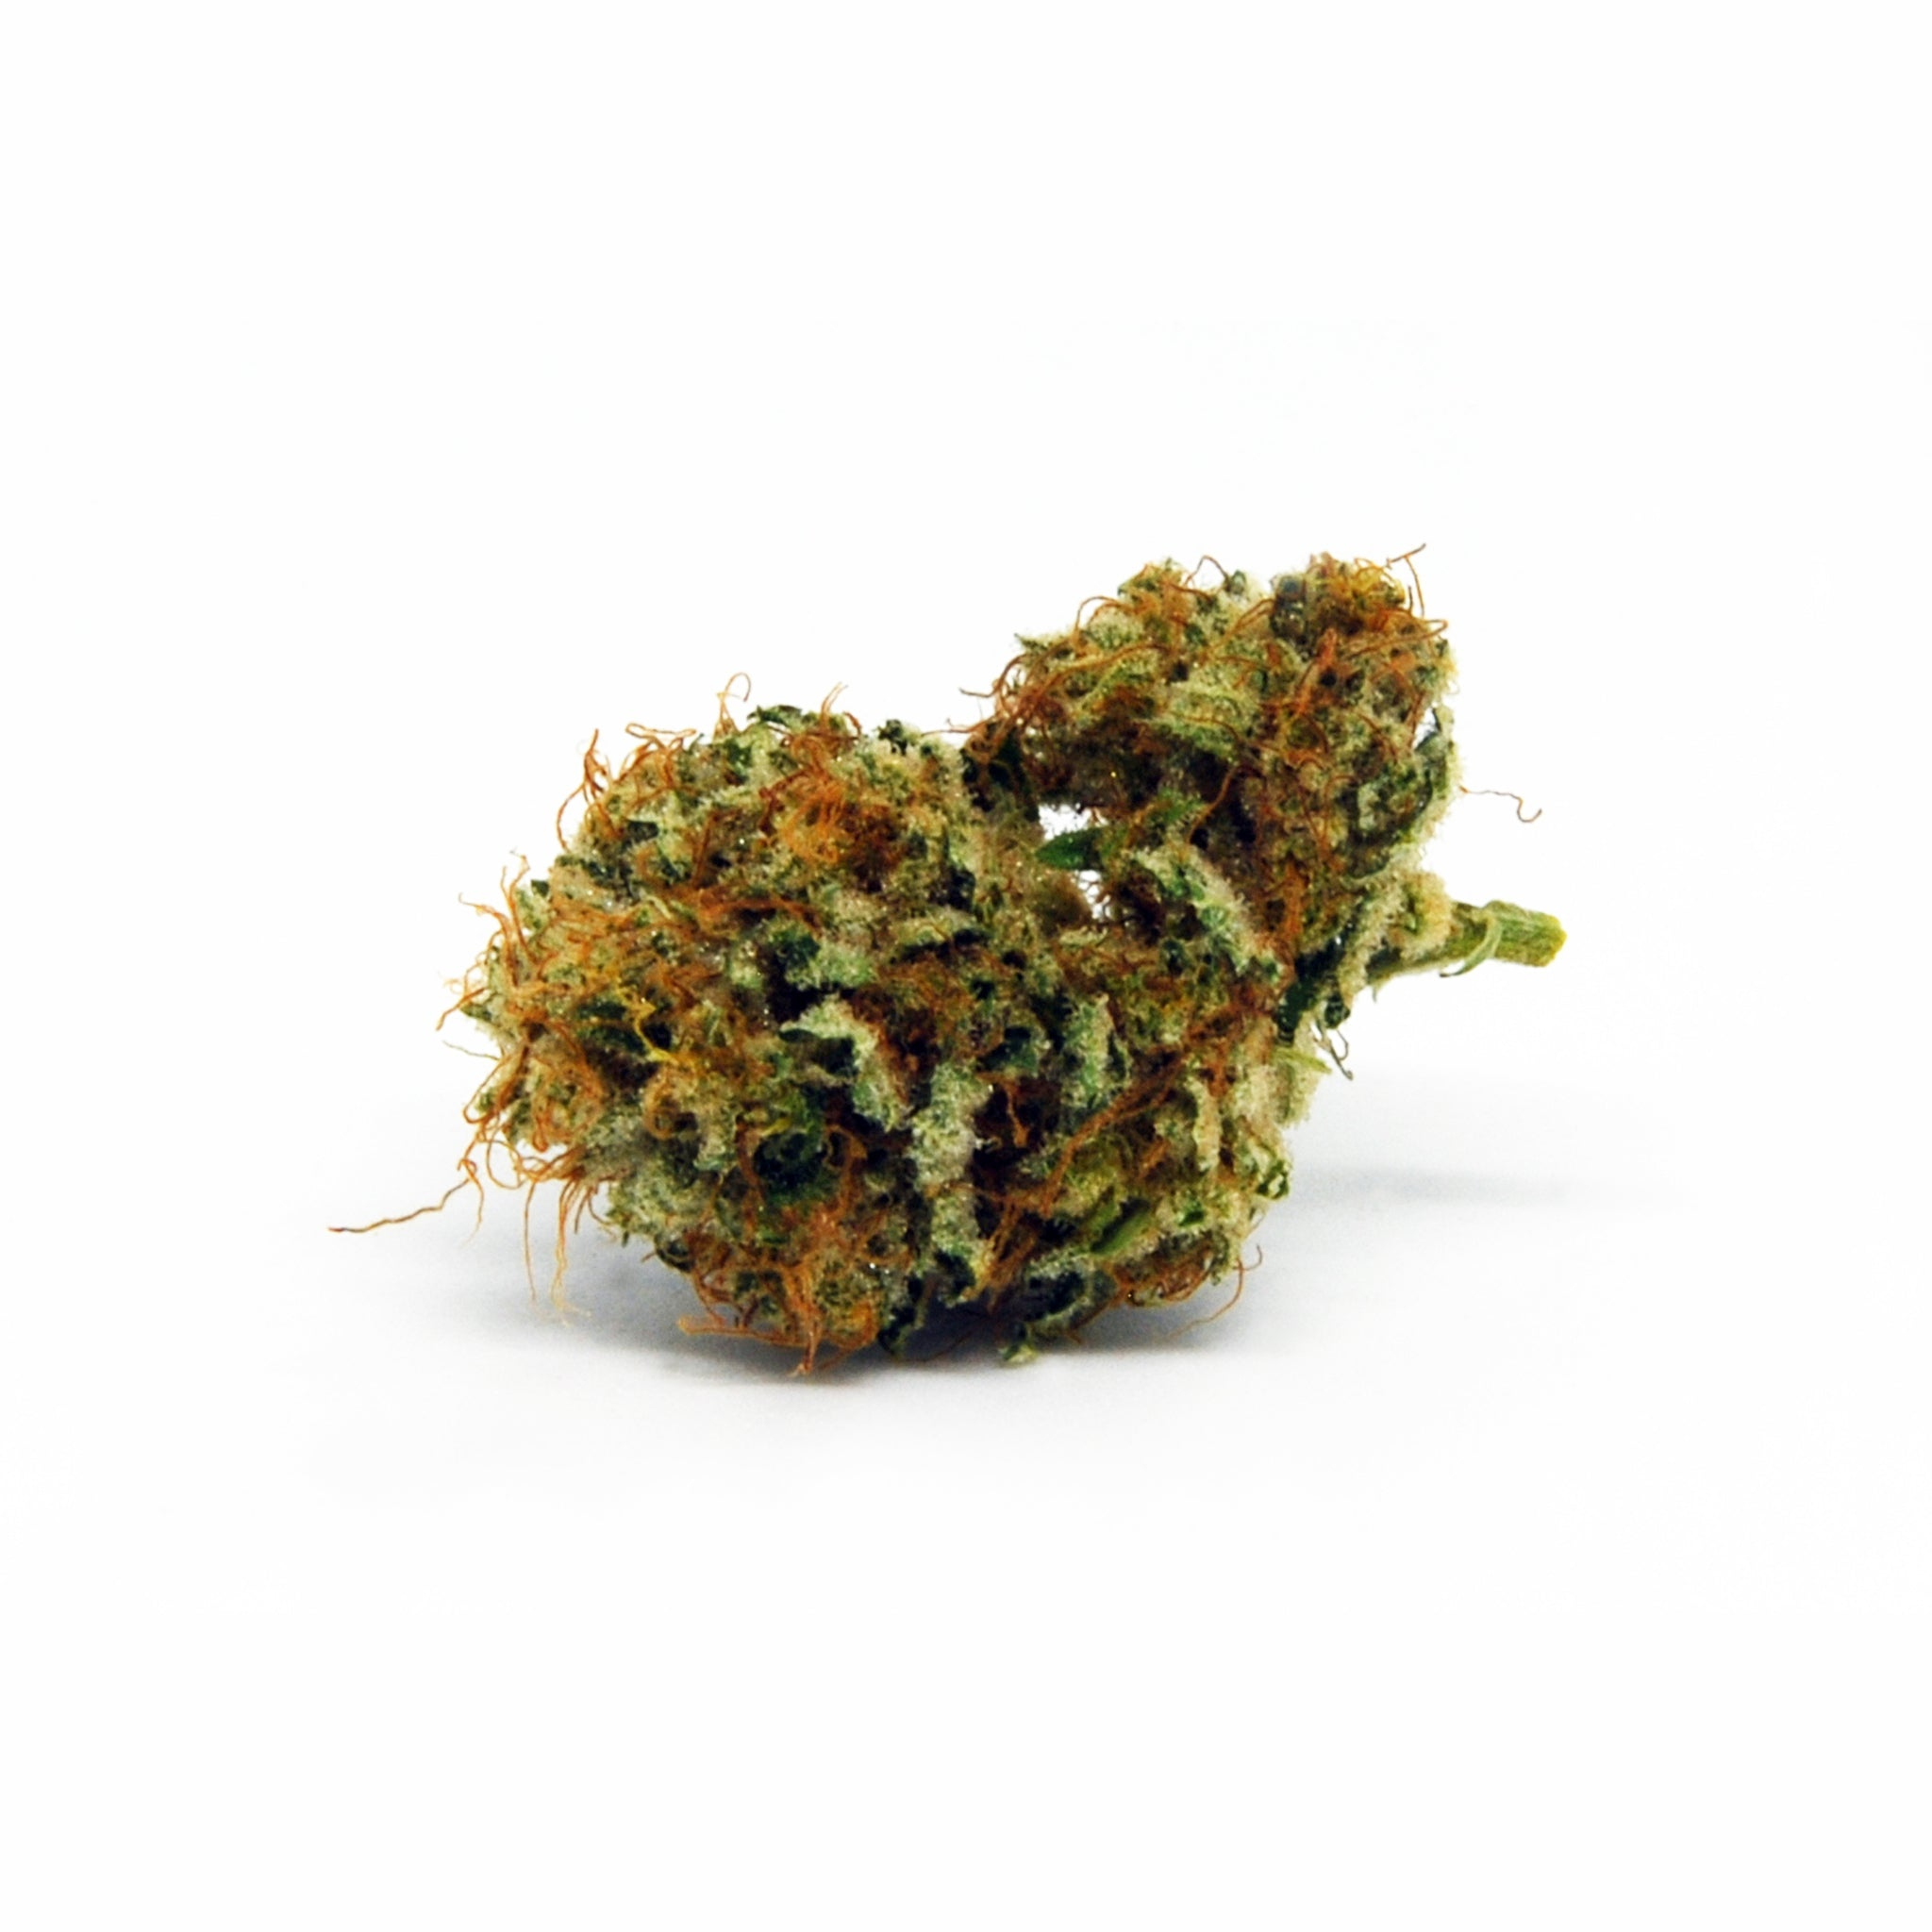 Ganjah - Jahvina - CBD Cannabis - Buy online in uWeed shop - Switzerland